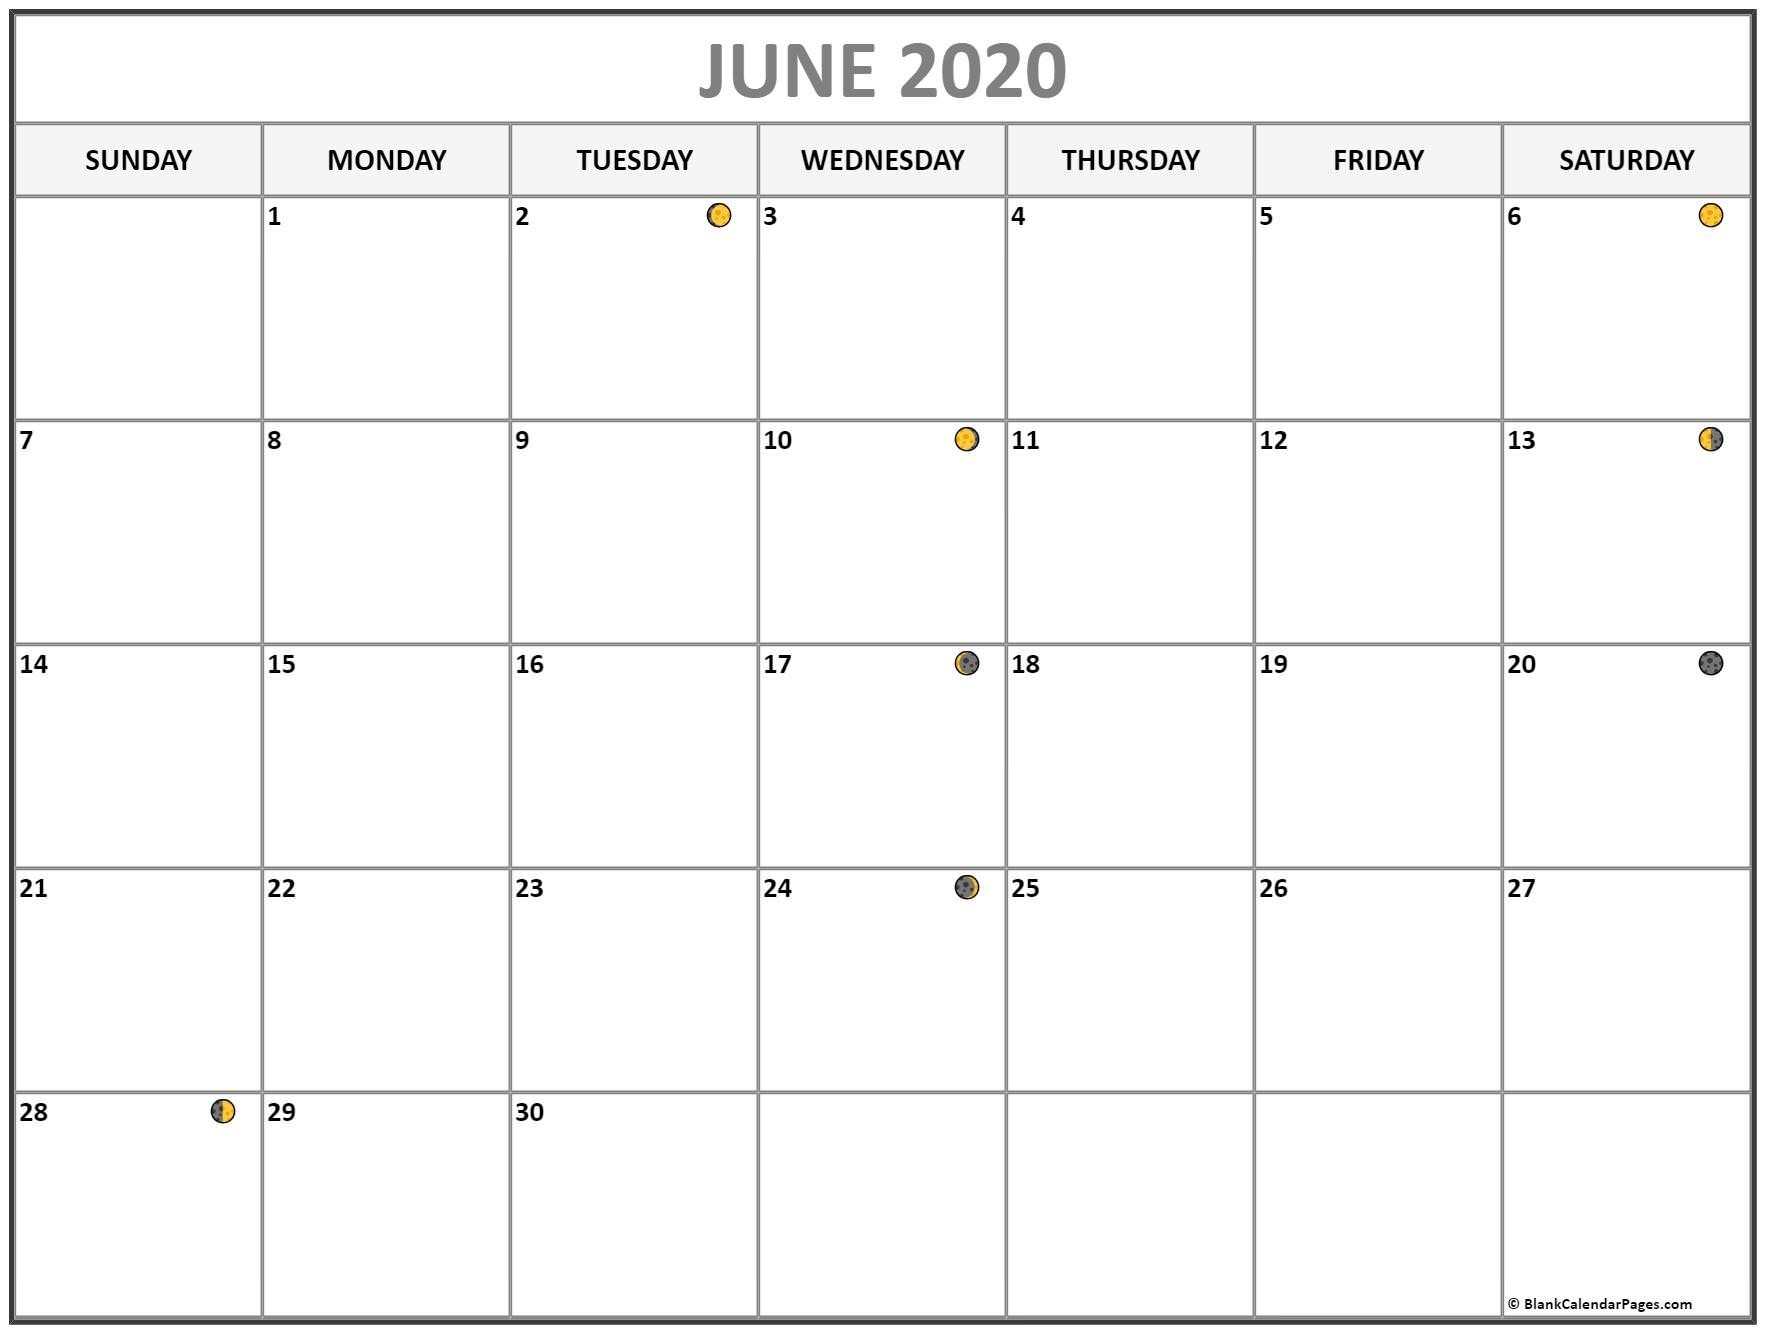 June 2020 Lunar Calendar | Moon Phase Calendar  Lunar And Solar Calendar 2020